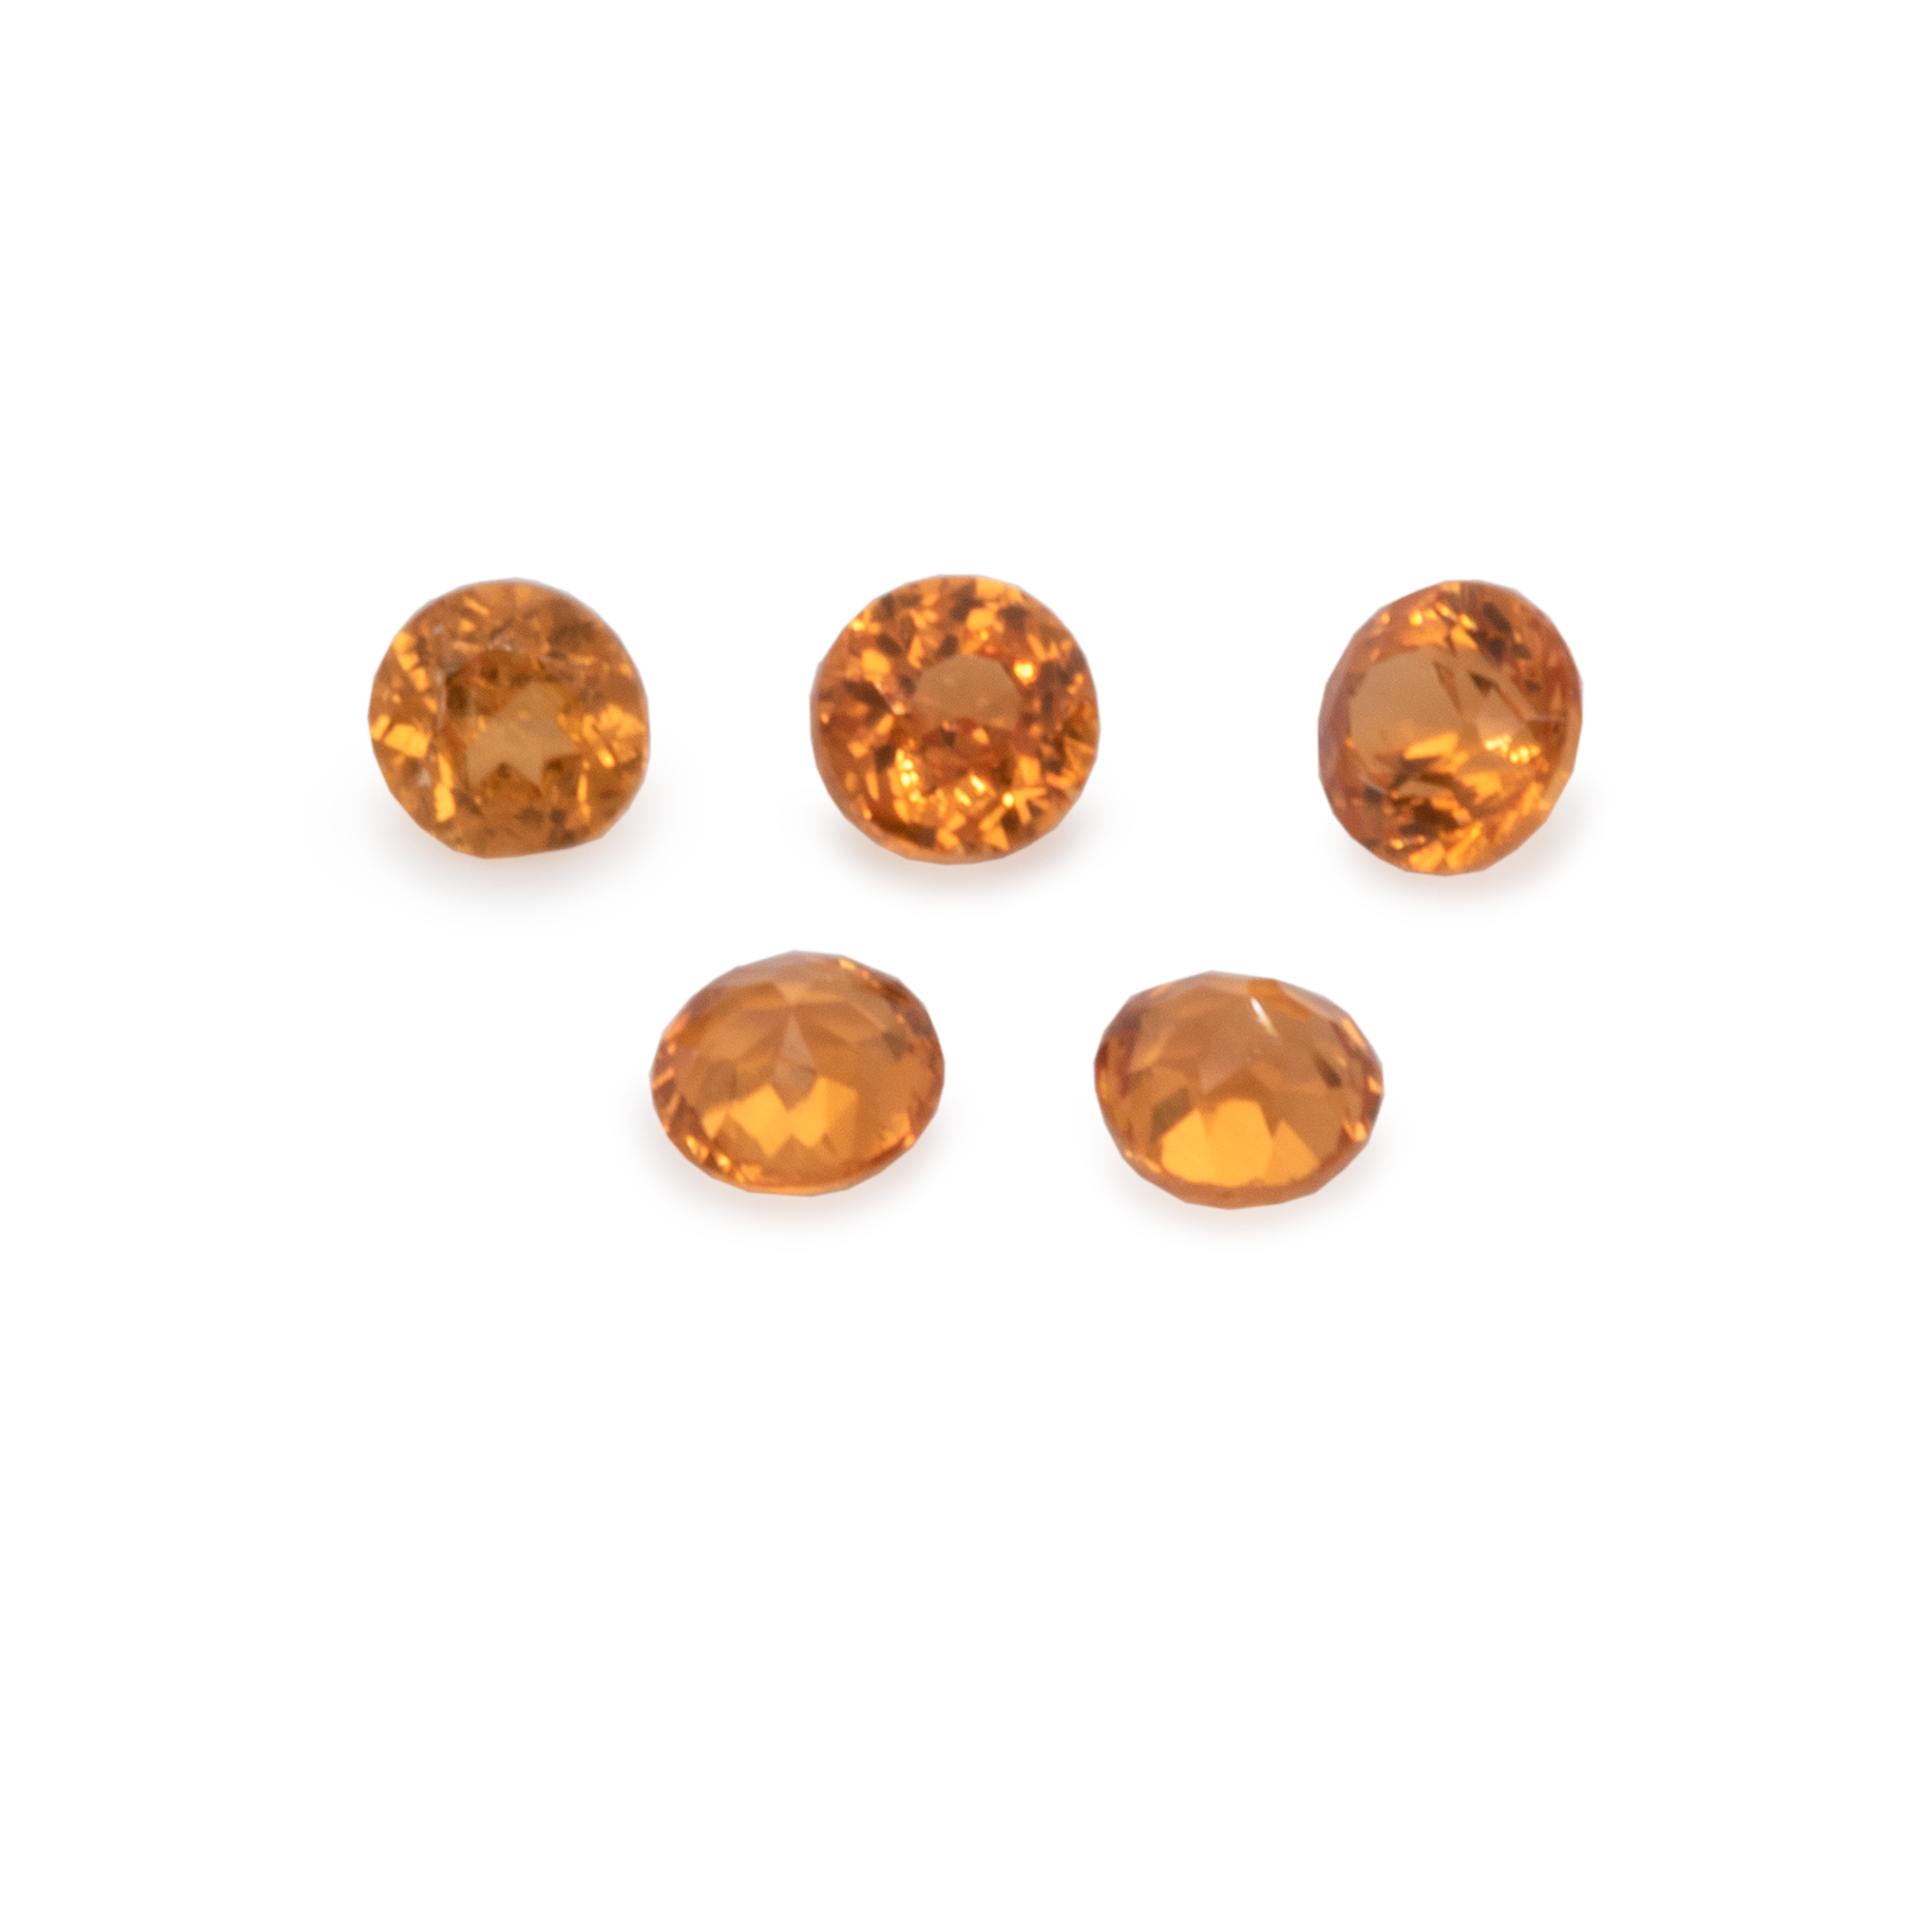 Mandarin Granat - hell orange, rund, 1,5x1,5 mm, 0,02-0,03 cts, Nr. MG28002